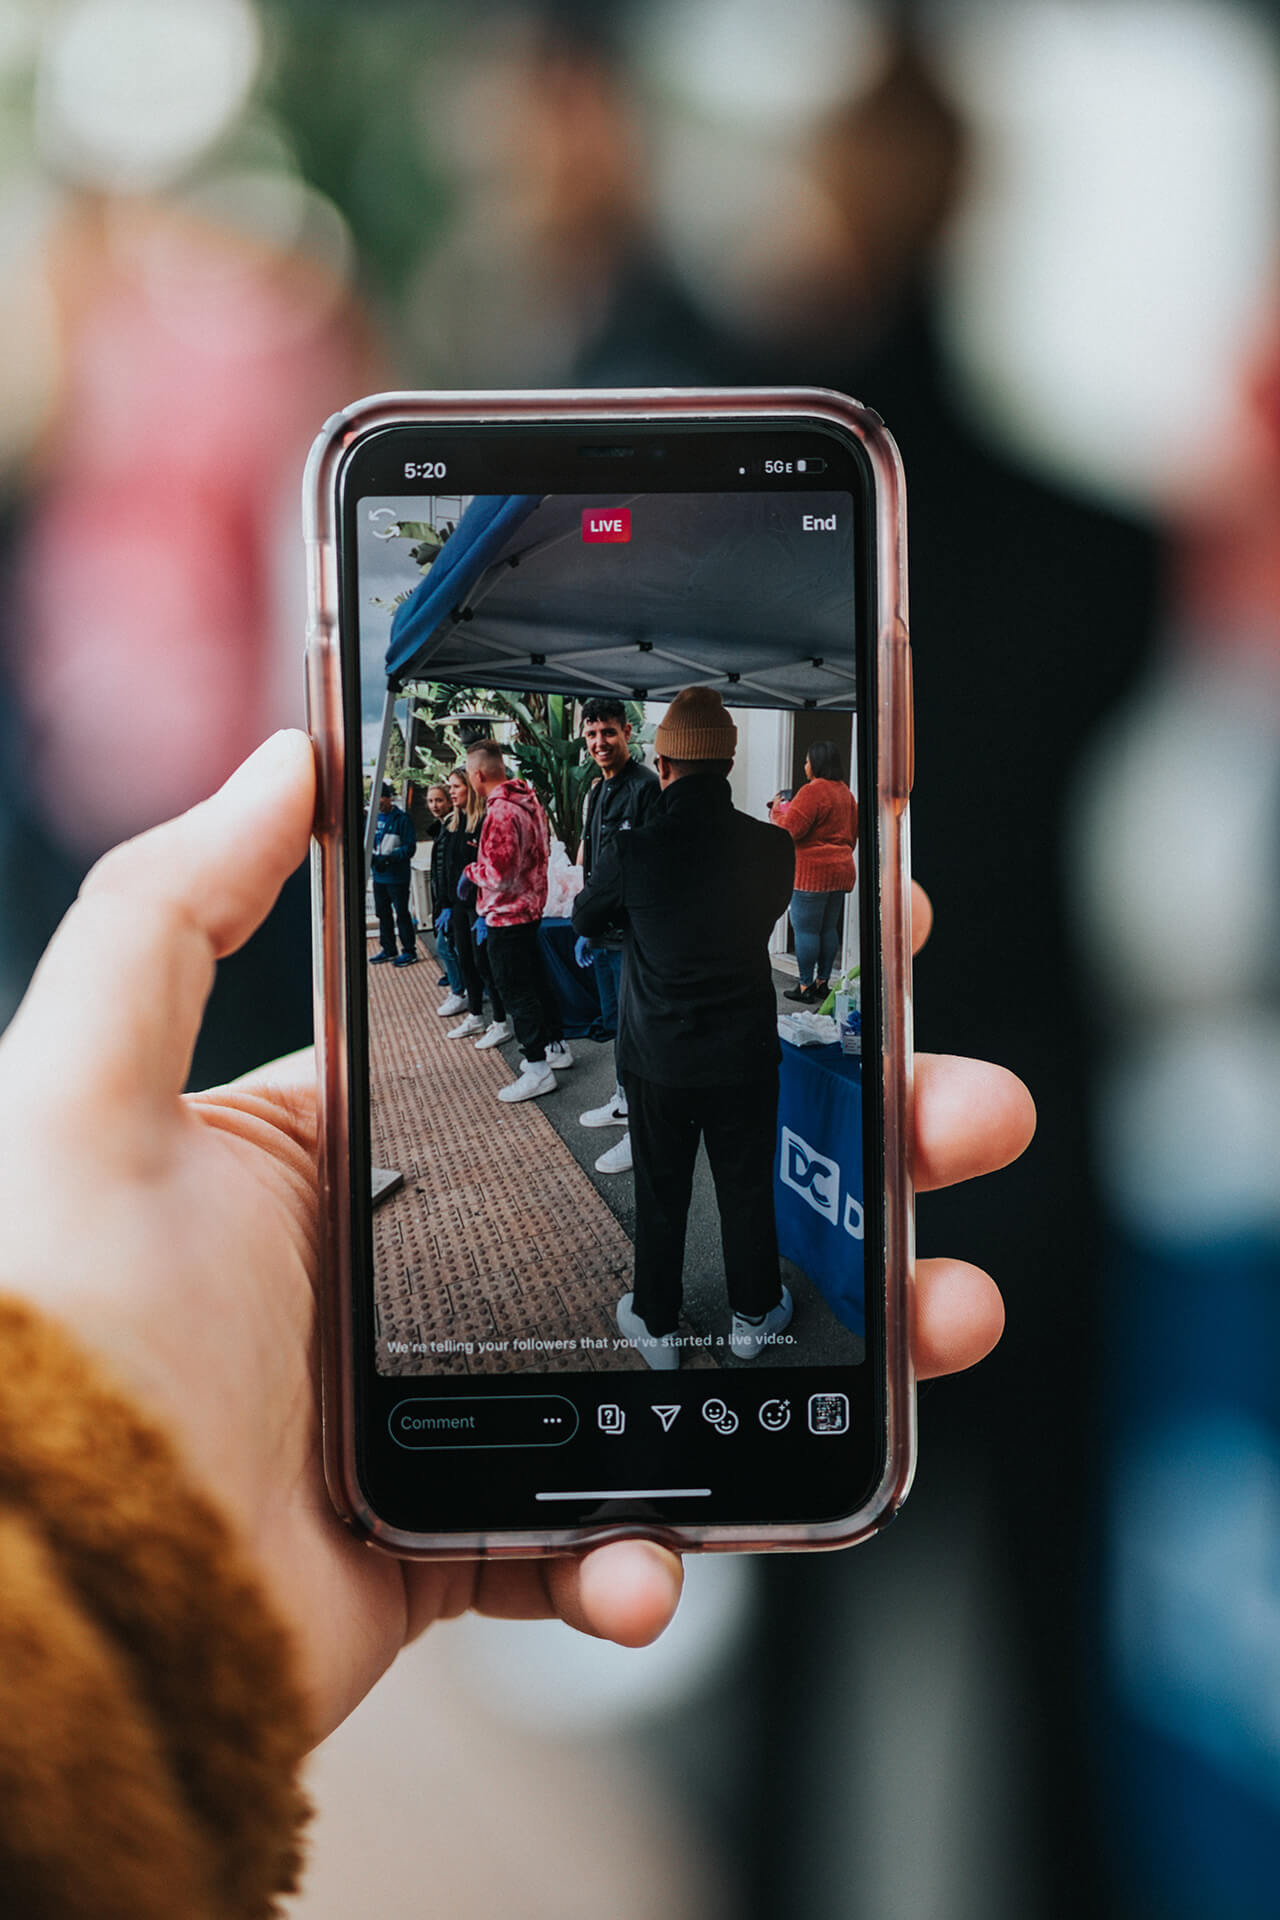 Livestream event being broadcasted from a phone. The event depicts people chatting in a queue